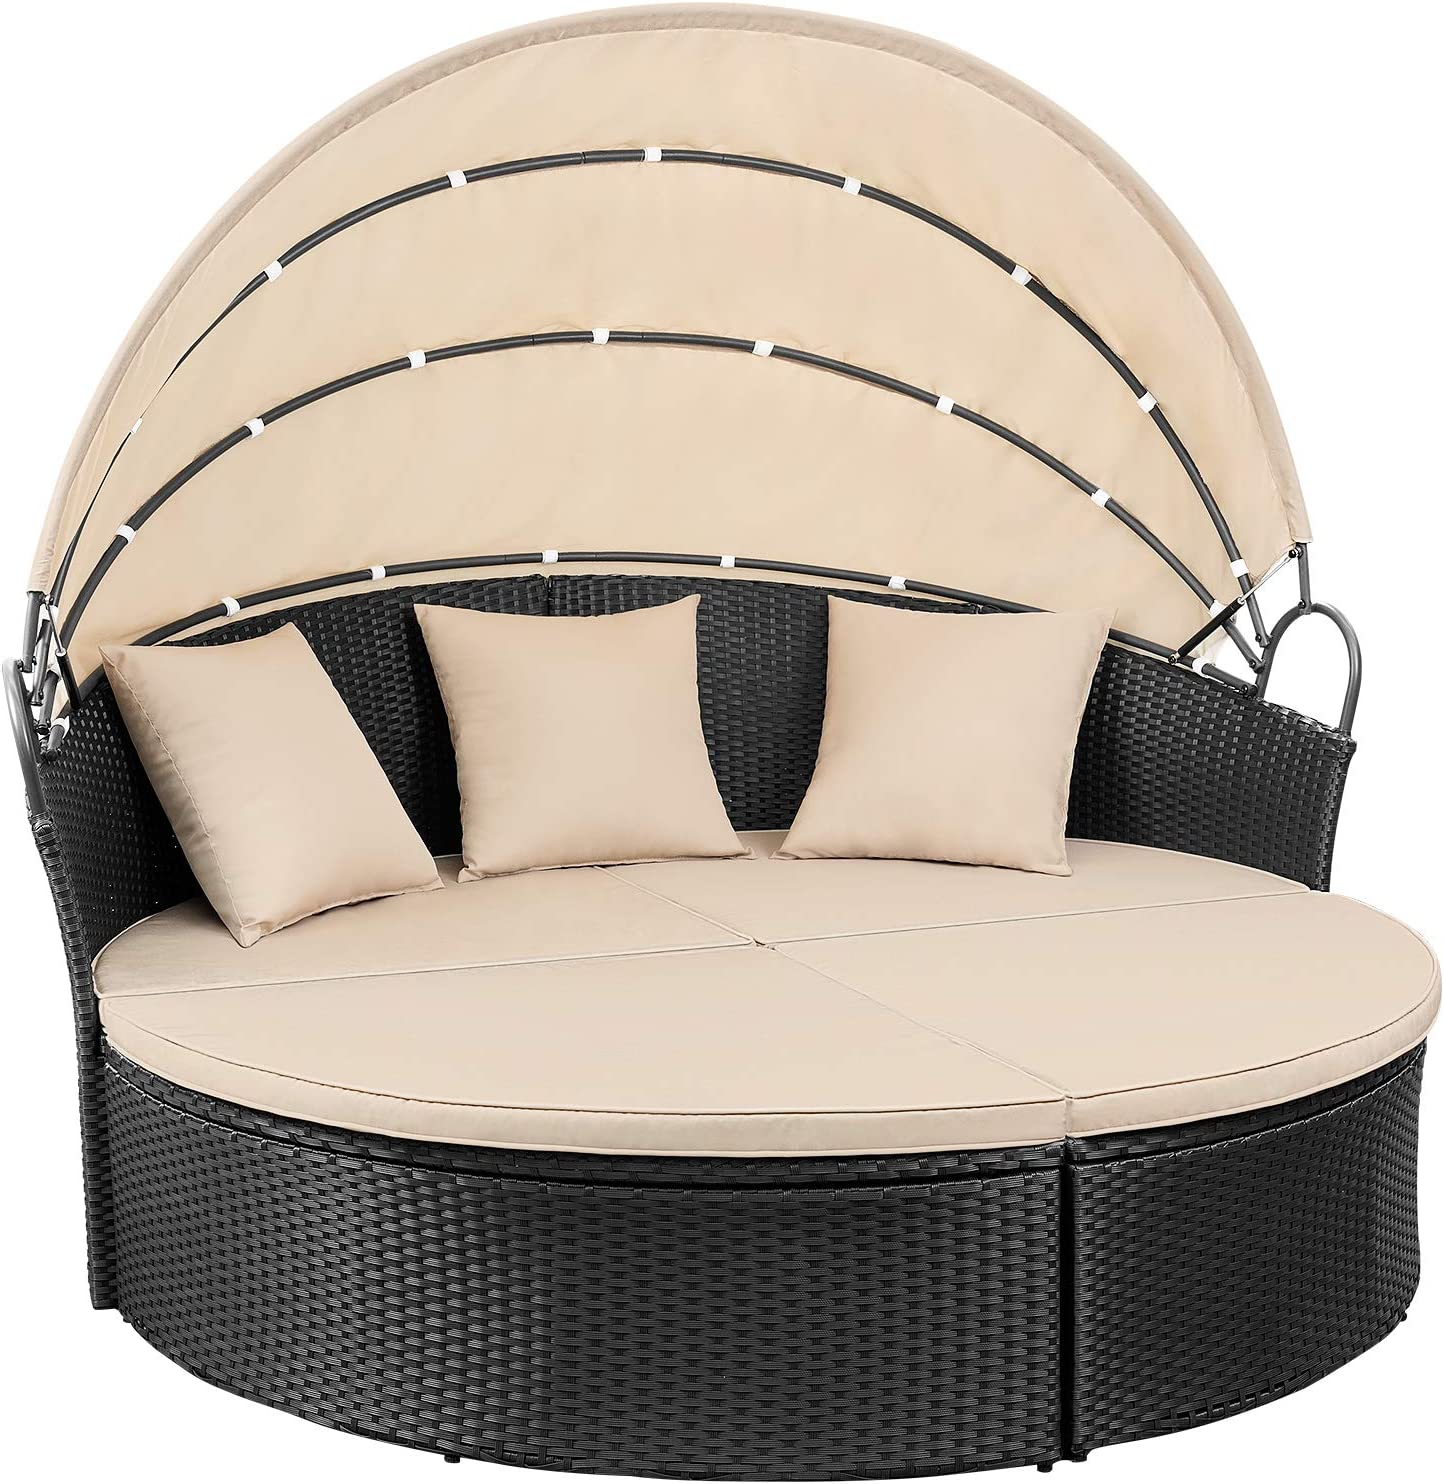 - Amazon.com: Devoko Patio Furniture Outdoor Round Daybed With